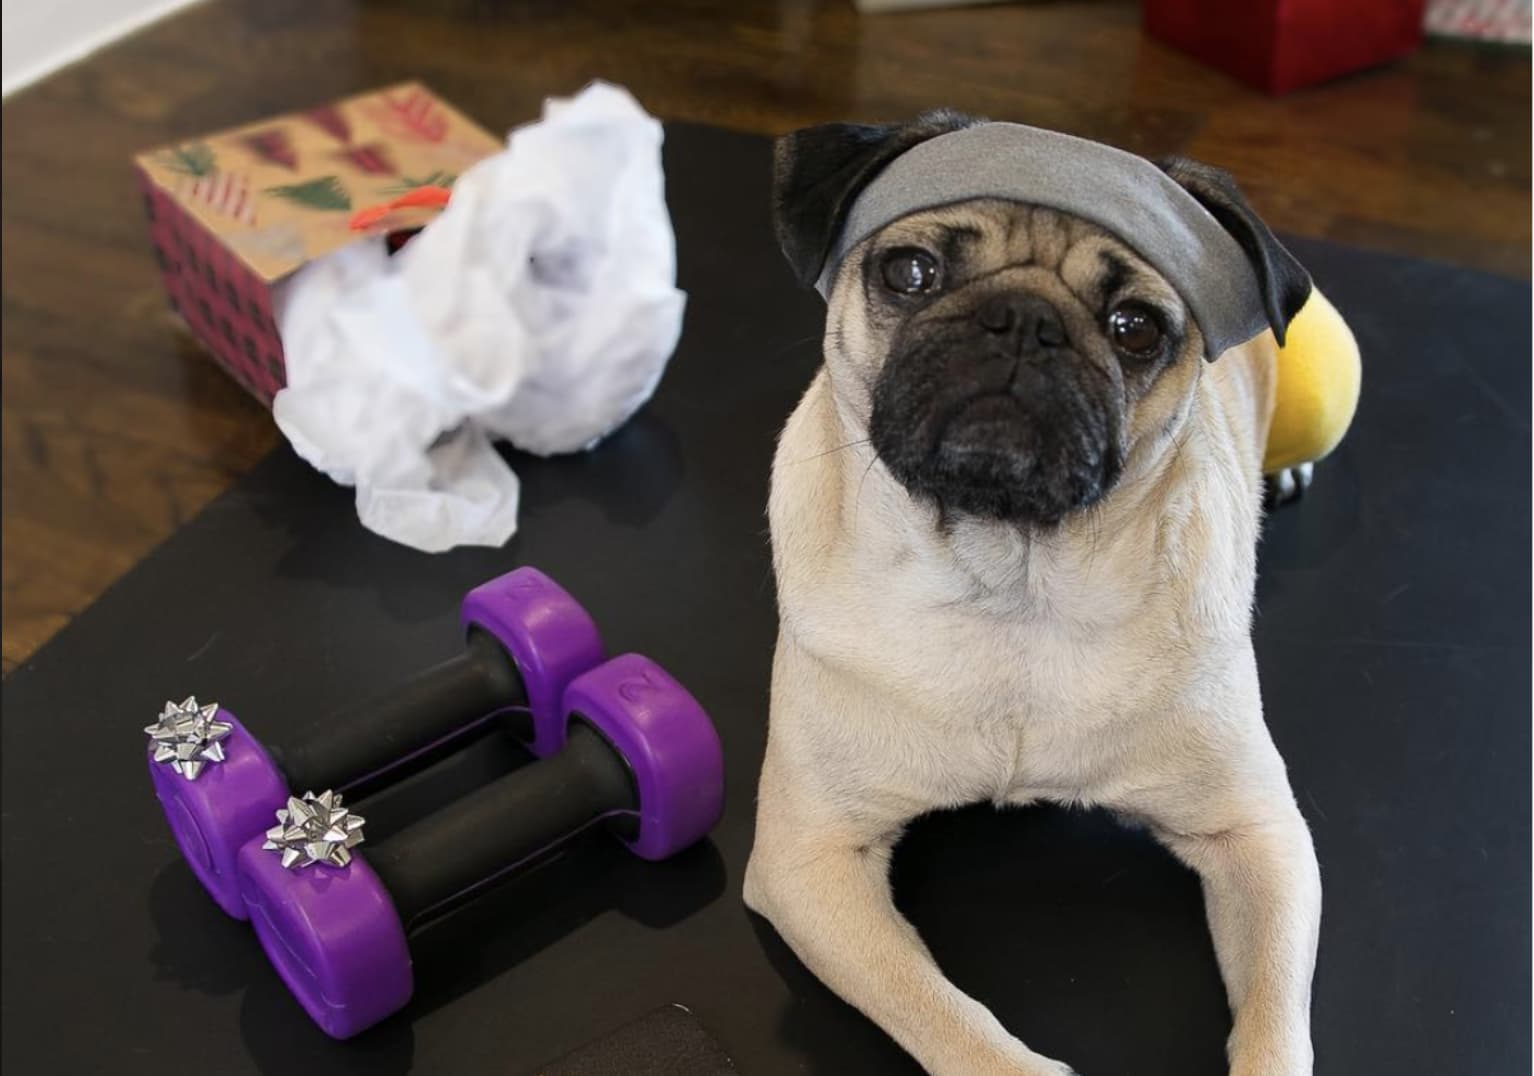 Planet Fitness x Doug the Pug